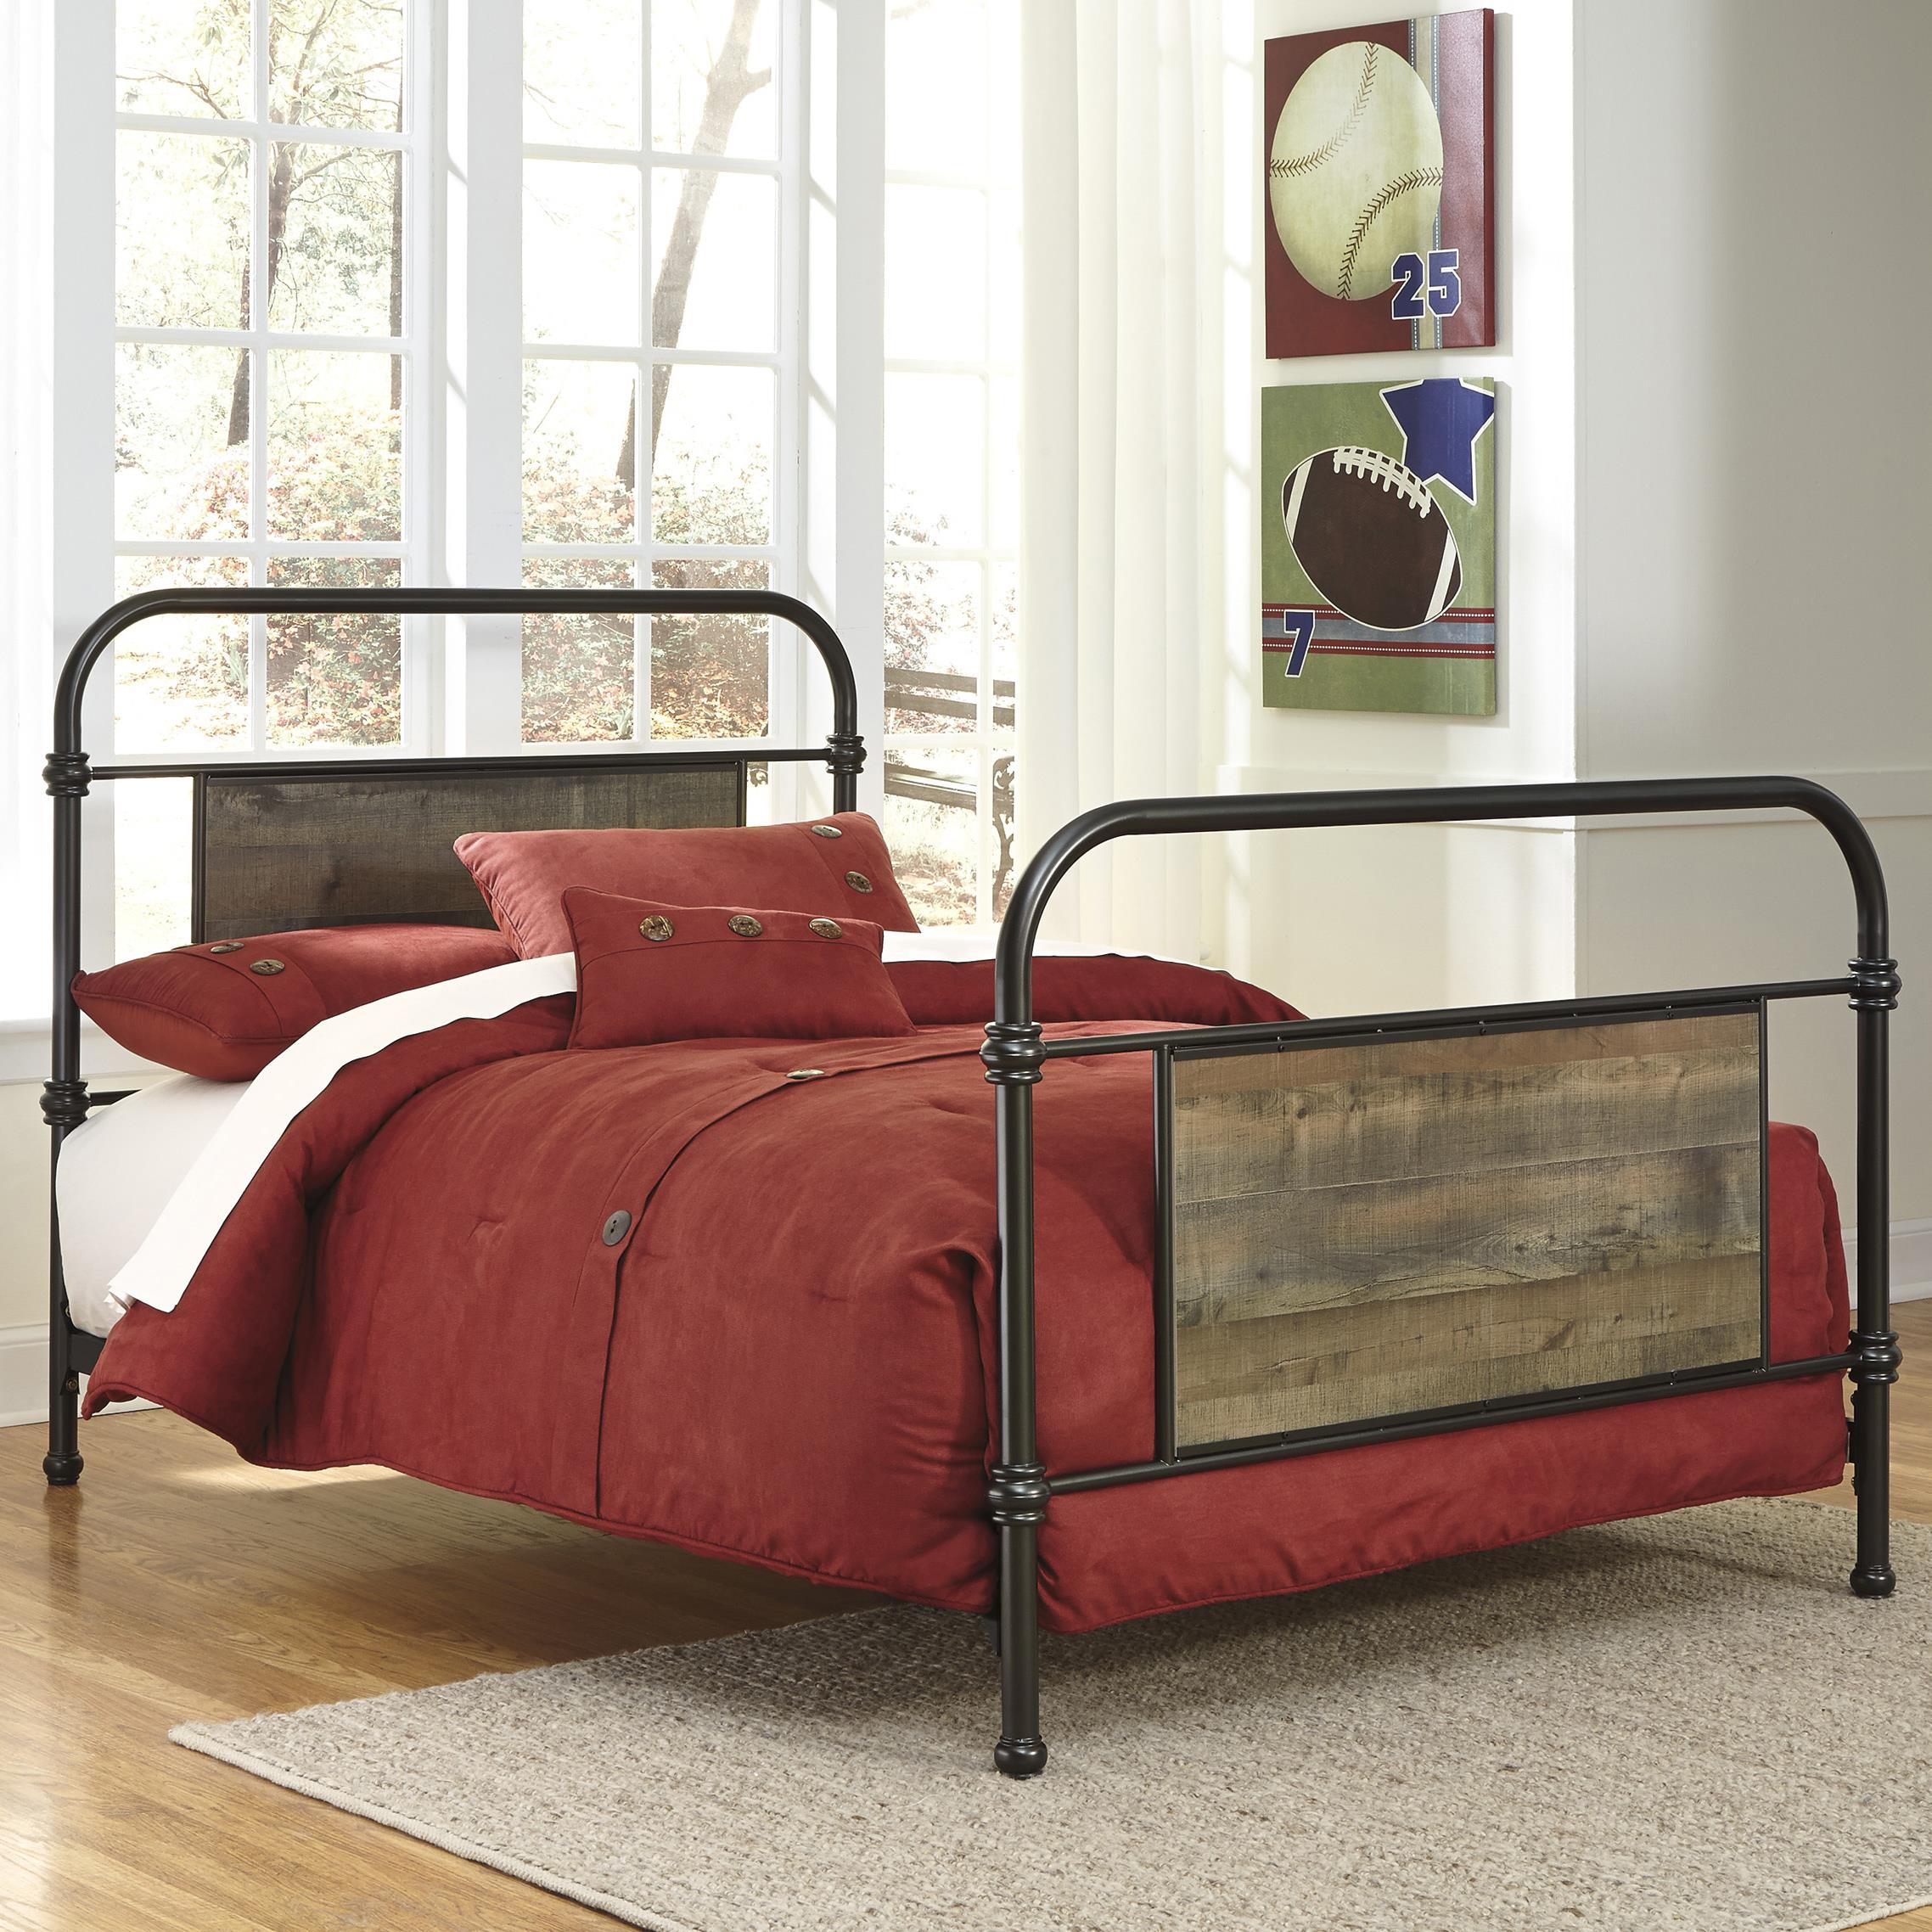 Twin Metal Bed with Reclaimed Wood Look Rustic Finish Panels by ...